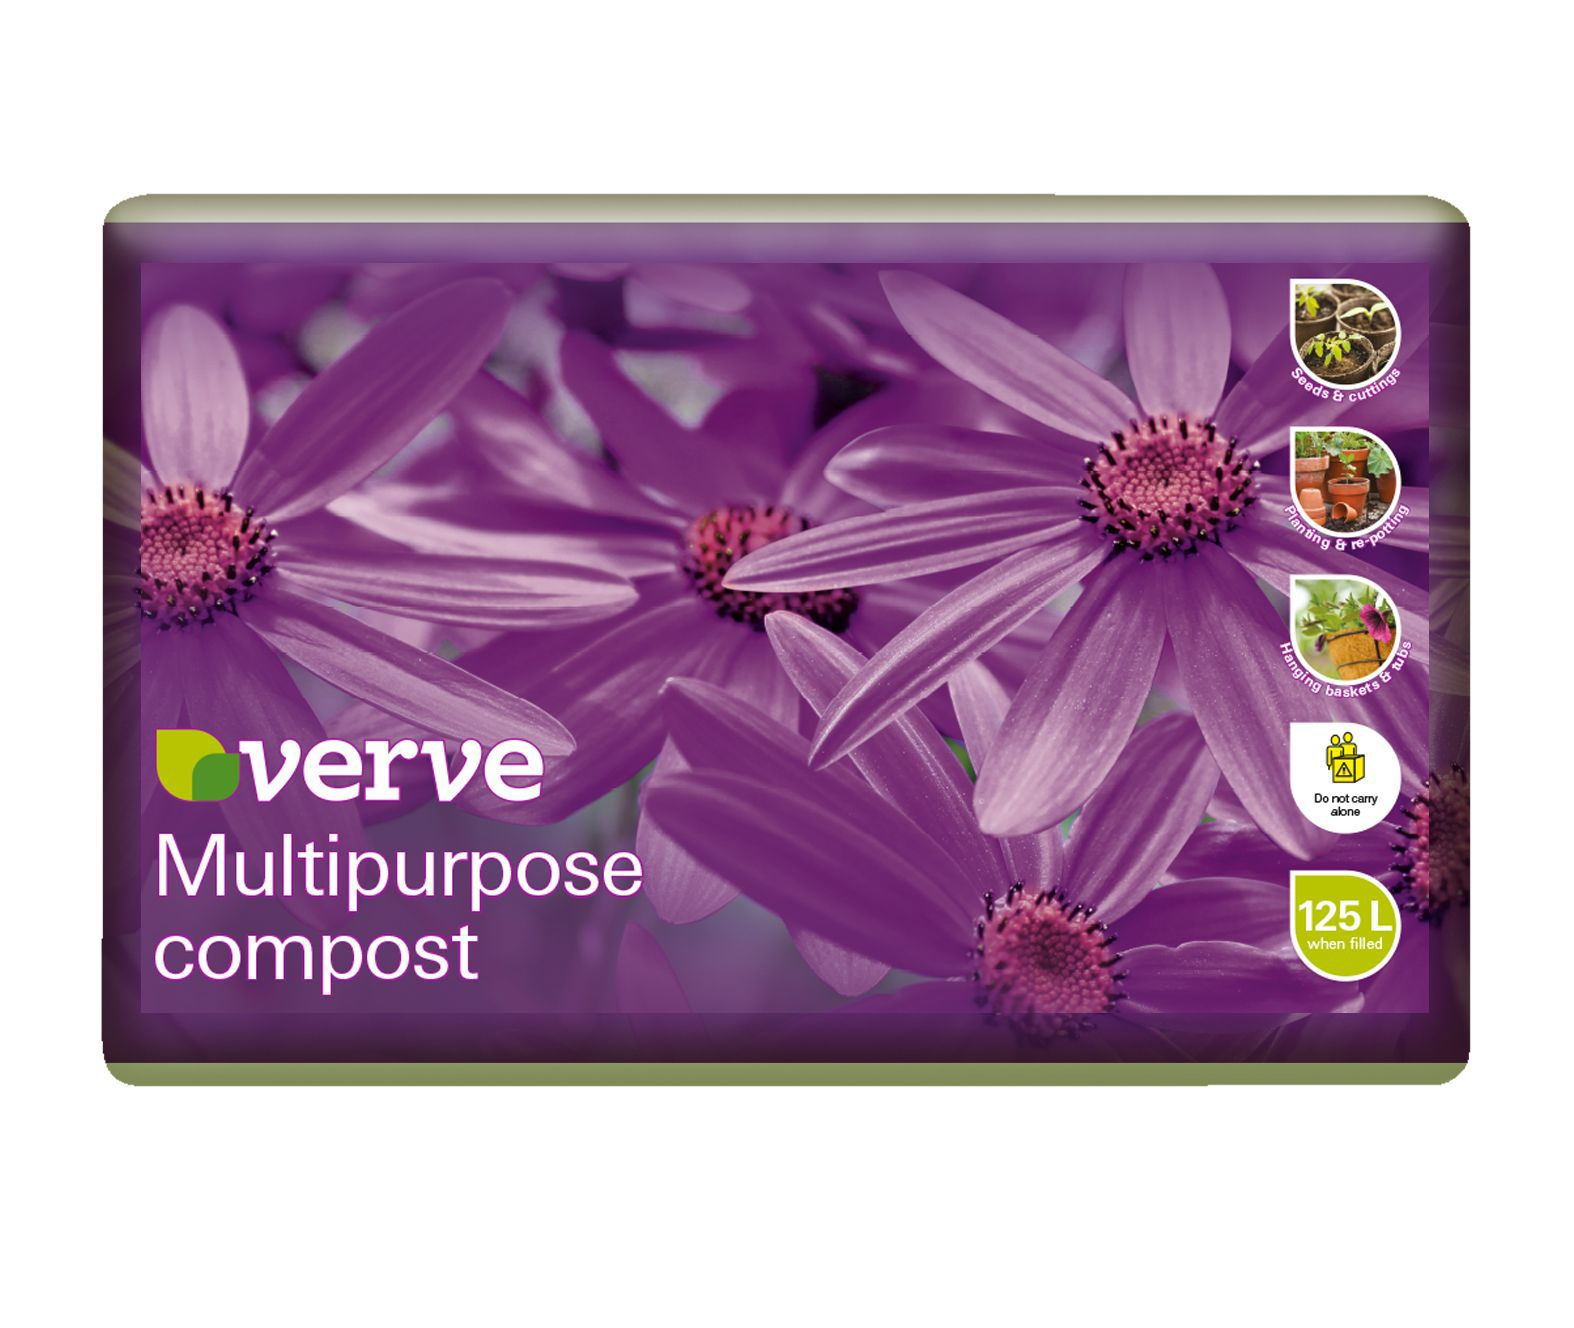 Verve Multipurpose Compost 125l Departments Diy At B Amp Q